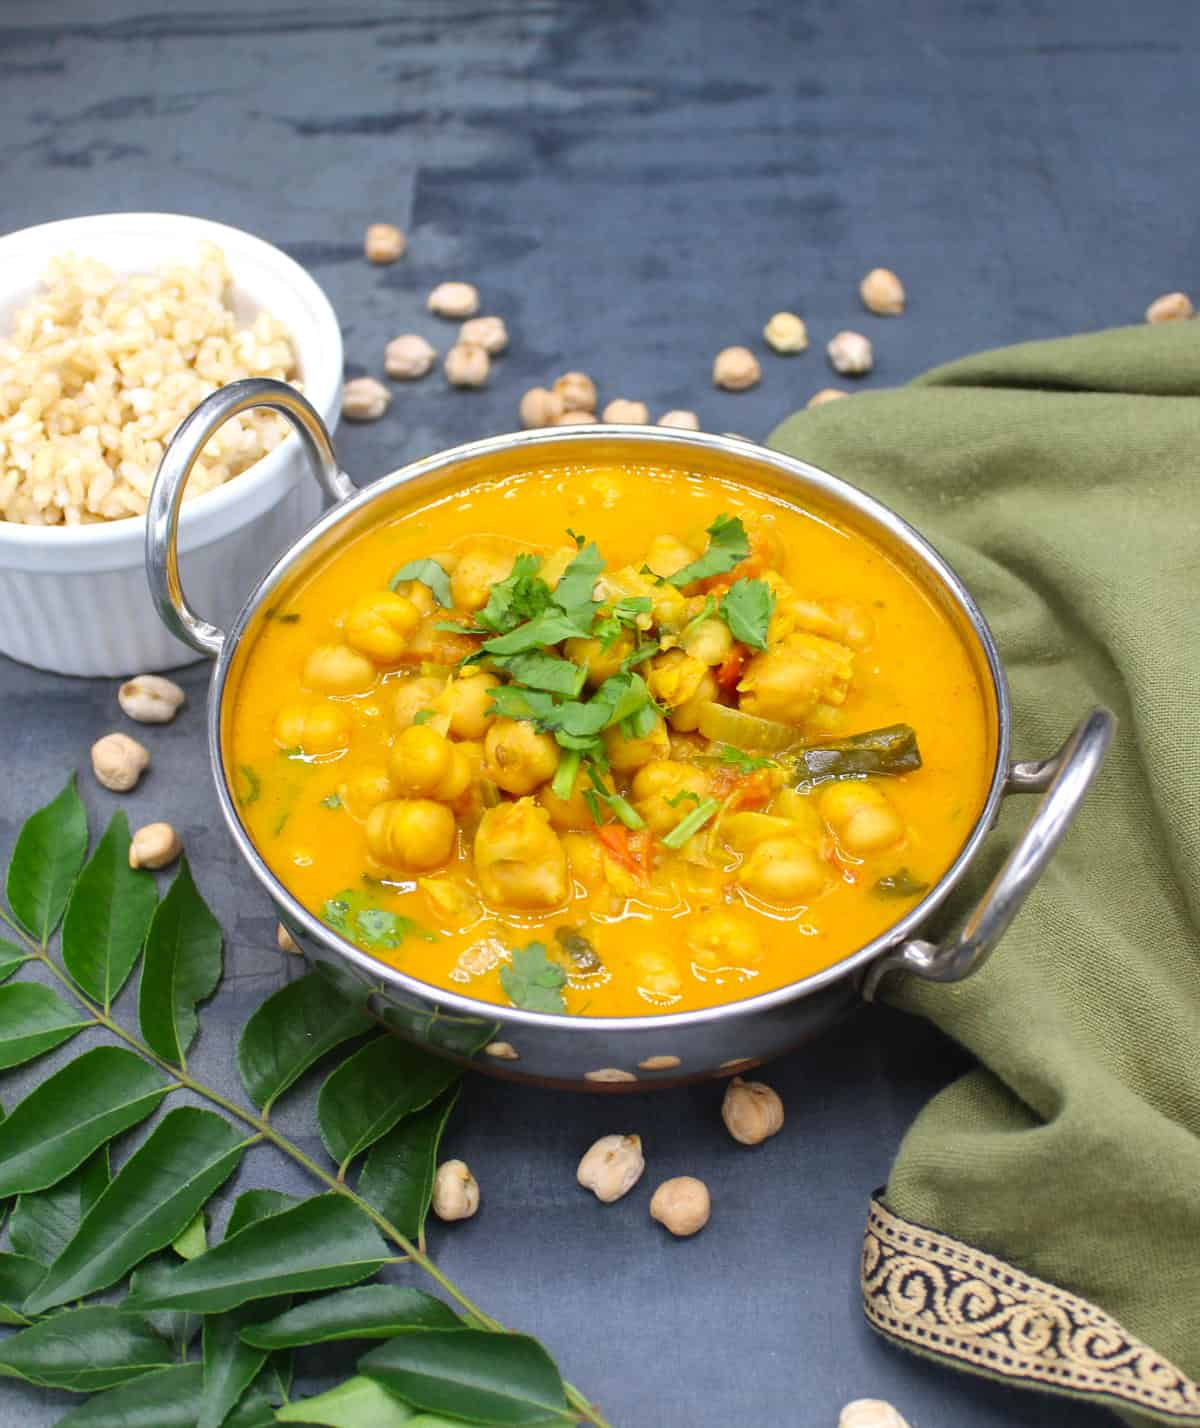 Front photo of a karahi with chickpea curry with cilantro garnish and served with brown rice with chickpeas and curry leaves scattered around.